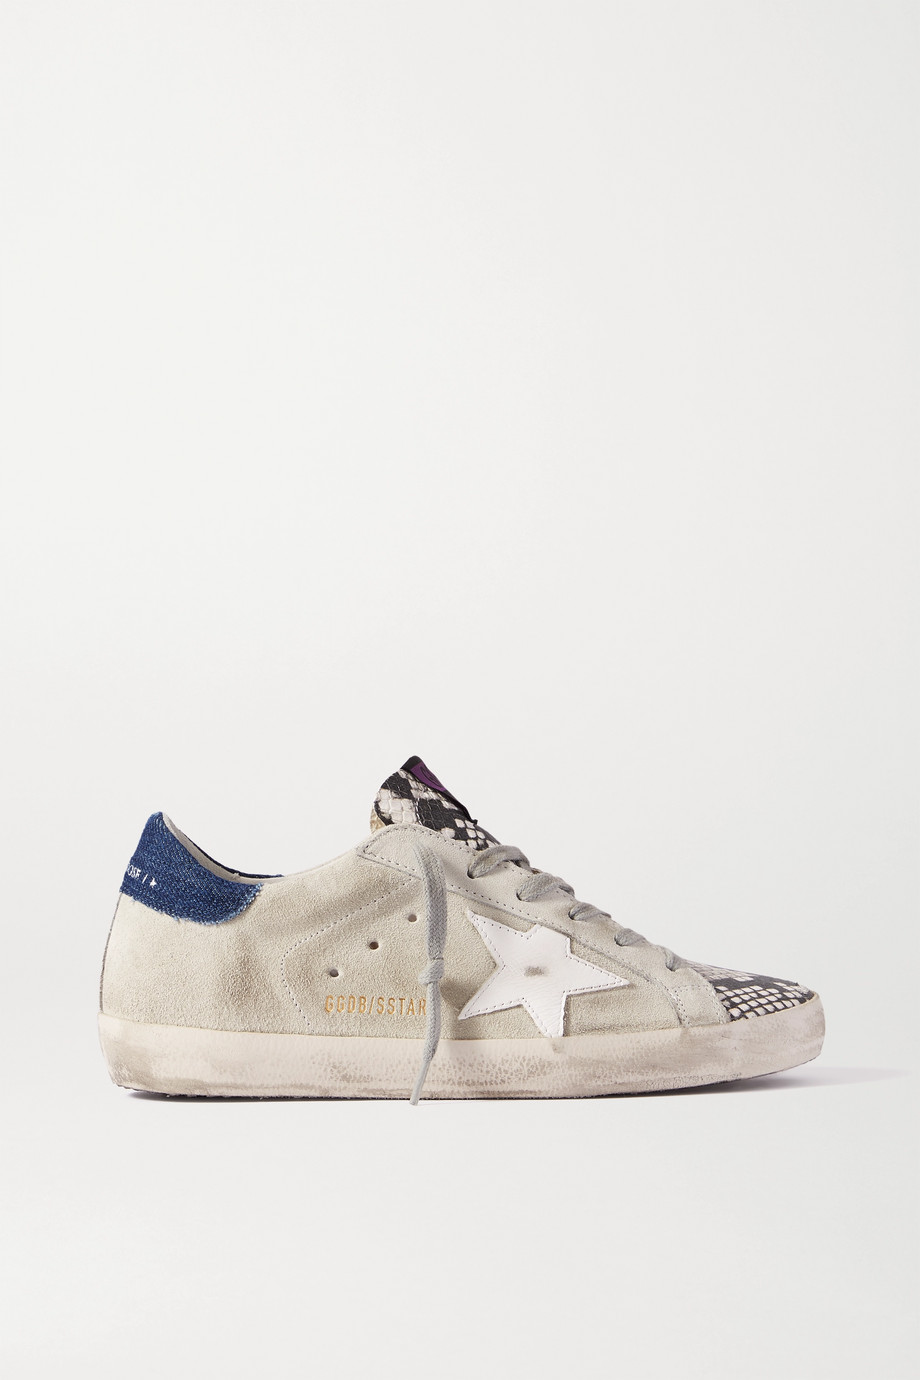 GOLDEN GOOSE Superstar denim-trimmed distressed snake-effect leather and suede sneakers